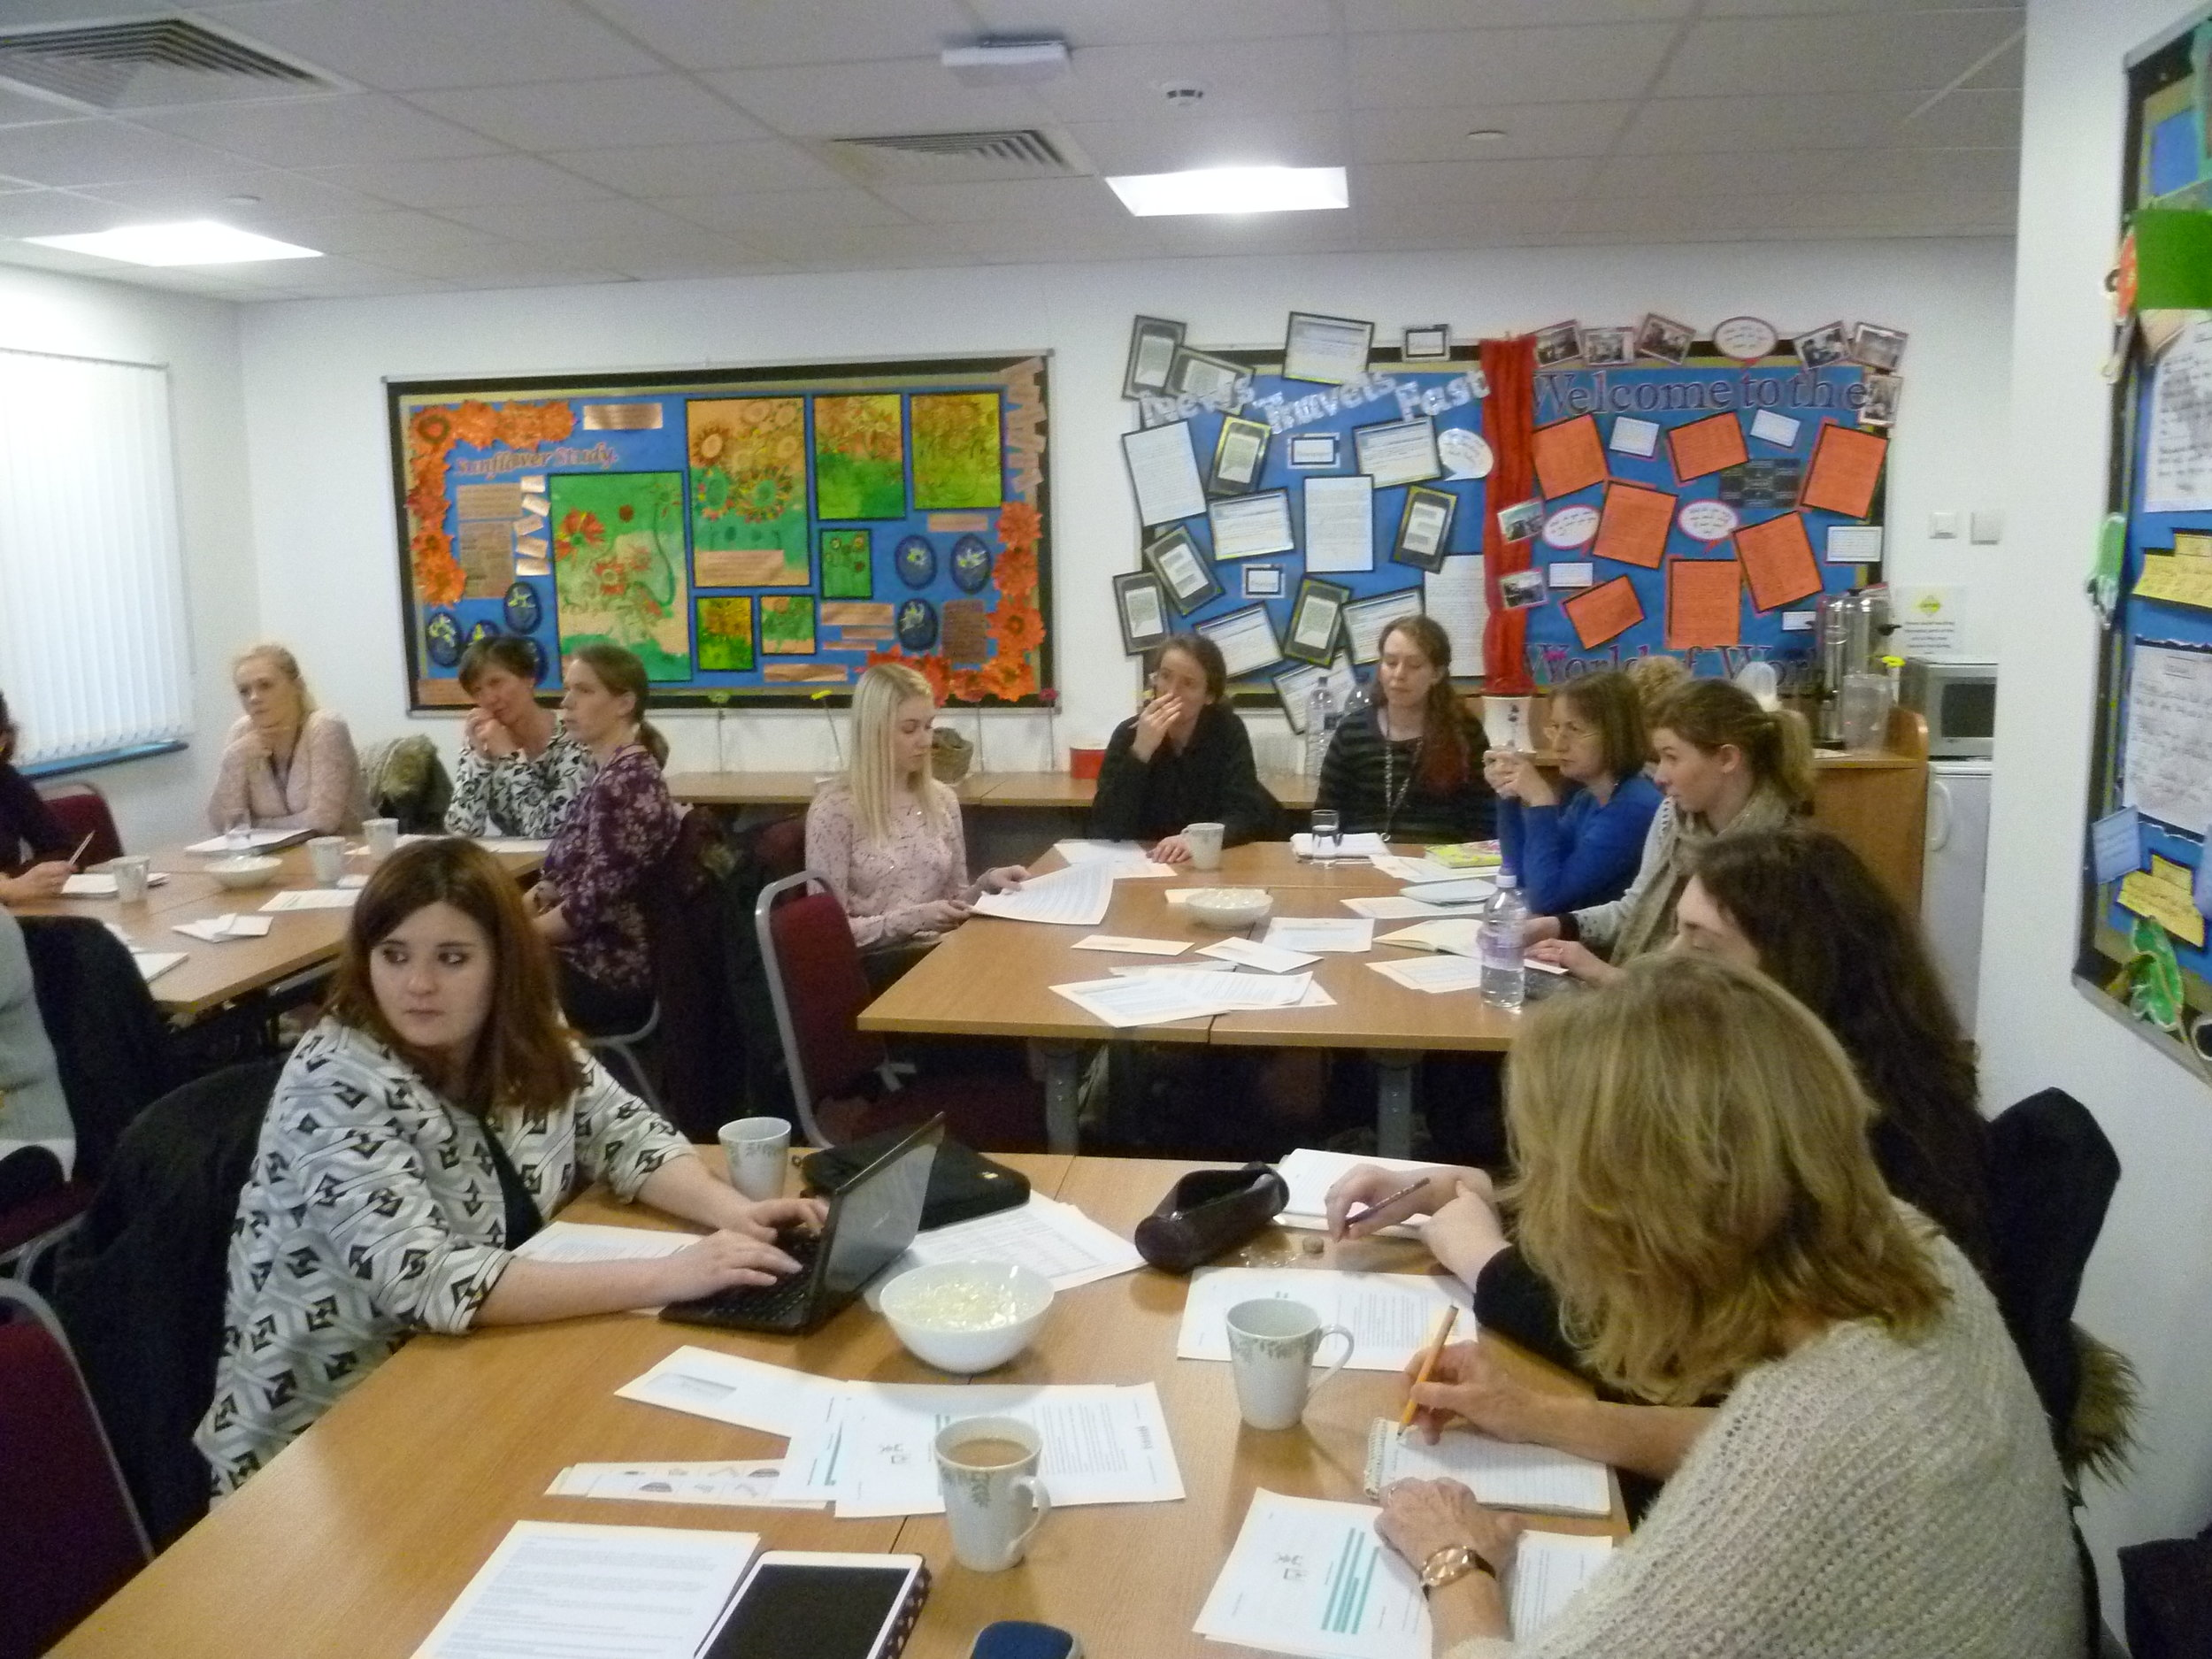 Local Network Meeting for the DfE training project